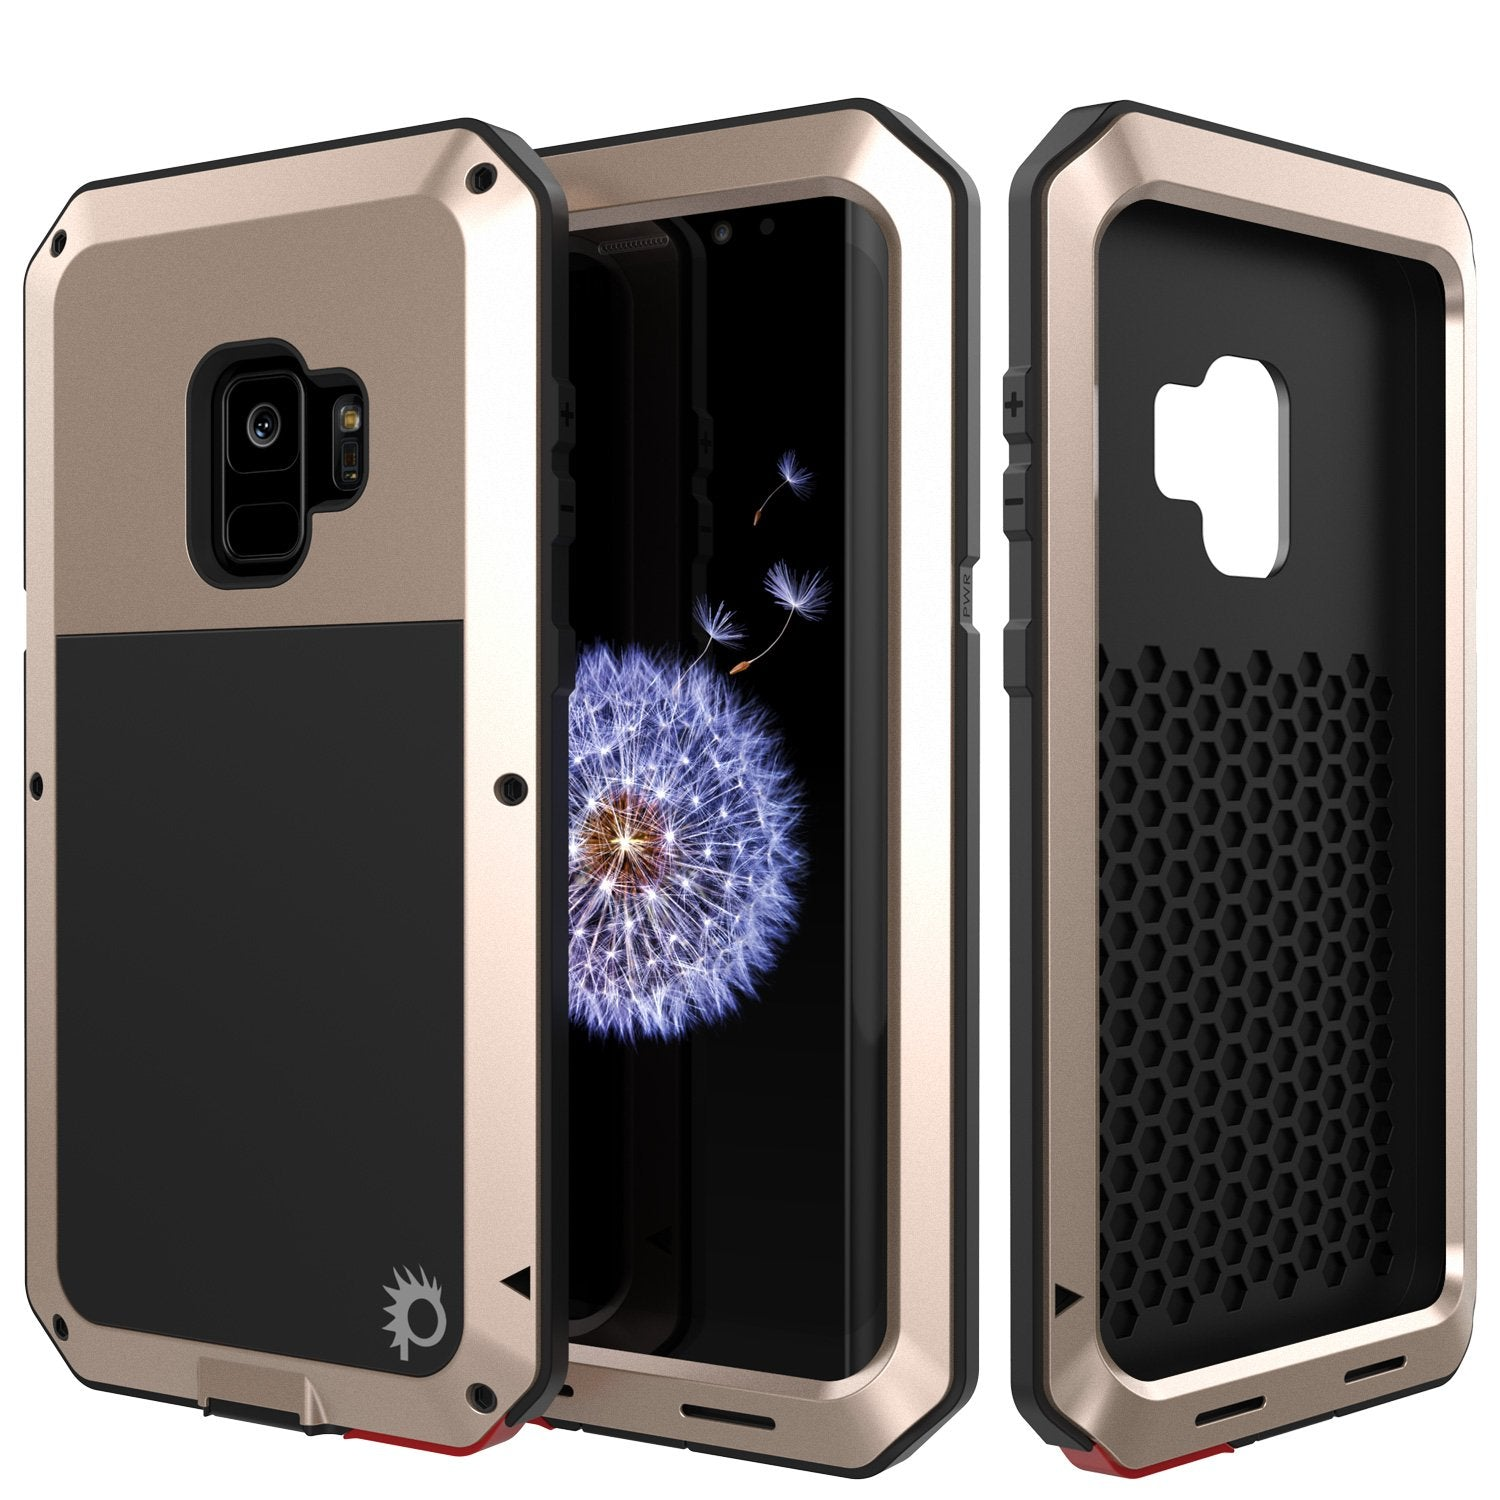 Galaxy S9 Metal Case, Heavy Duty Military Grade Rugged Armor Cover [shock proof] Hybrid Full Body Hard Aluminum & TPU Design [non slip] W/ Prime Drop Protection for Samsung Galaxy S9 [Gold]